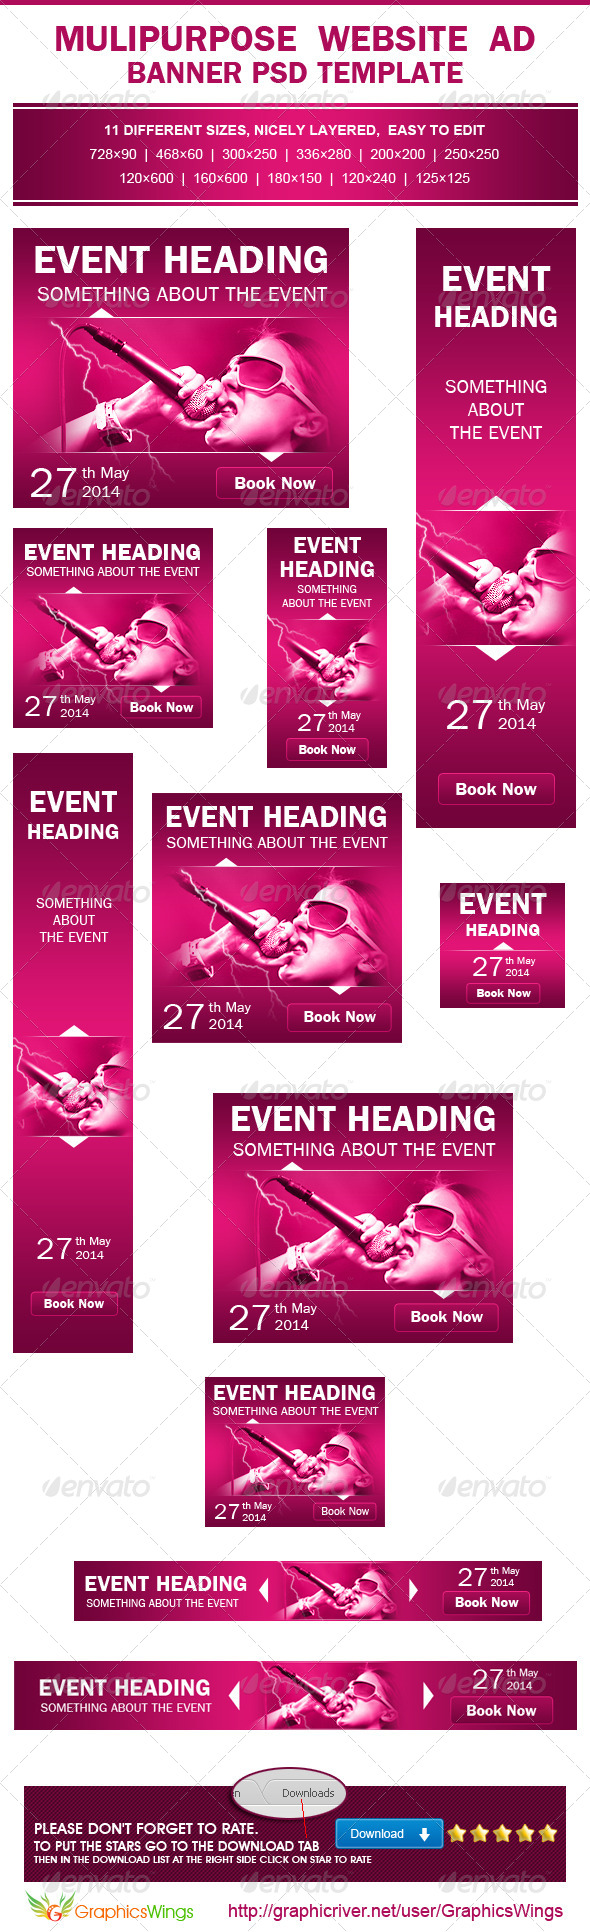 Multipurpose Event Promotion Ad PSD Template - Banners & Ads Web Elements